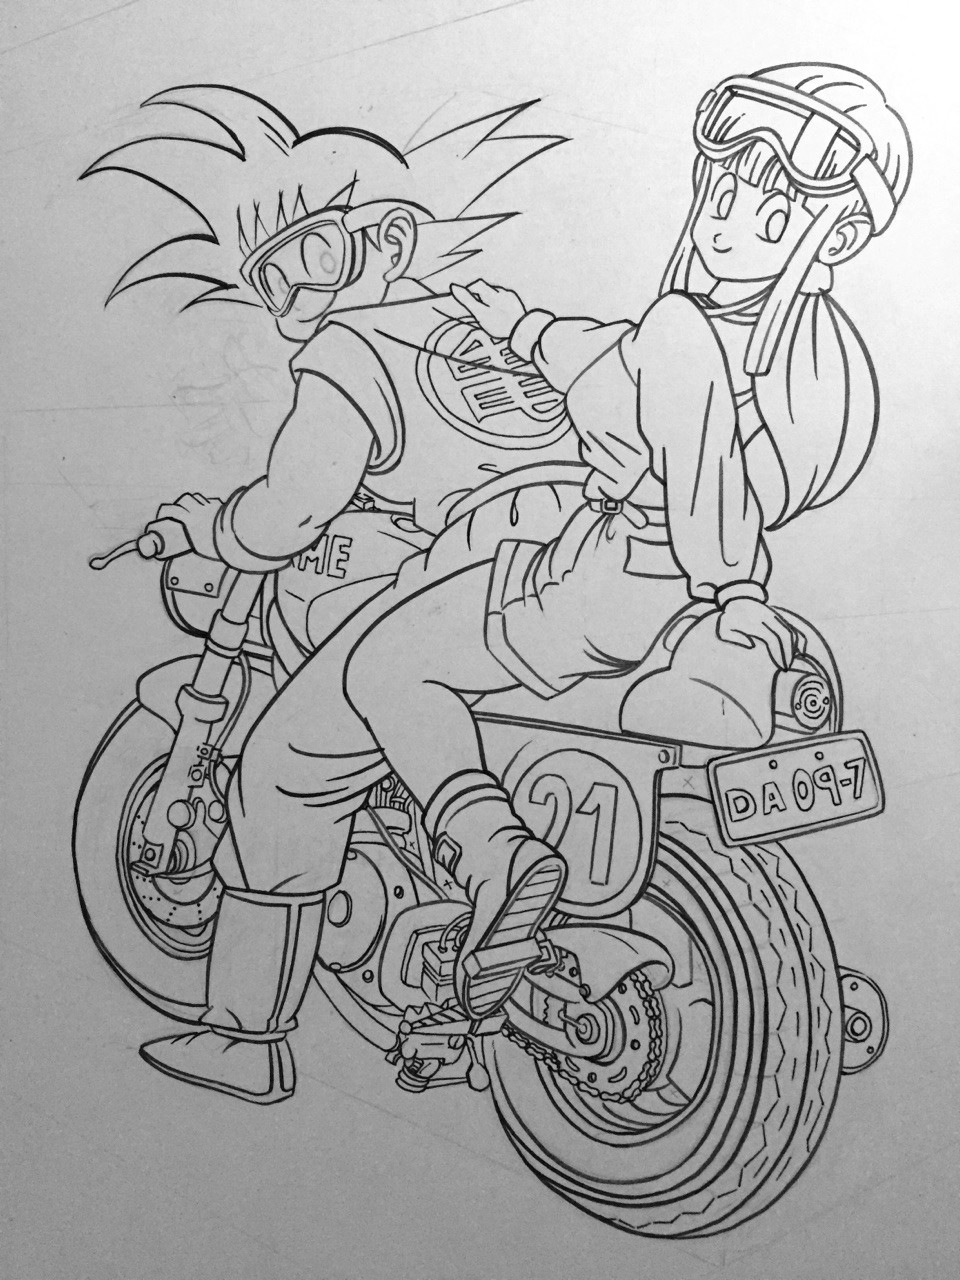 Continuing with Goku until the inks are finished.